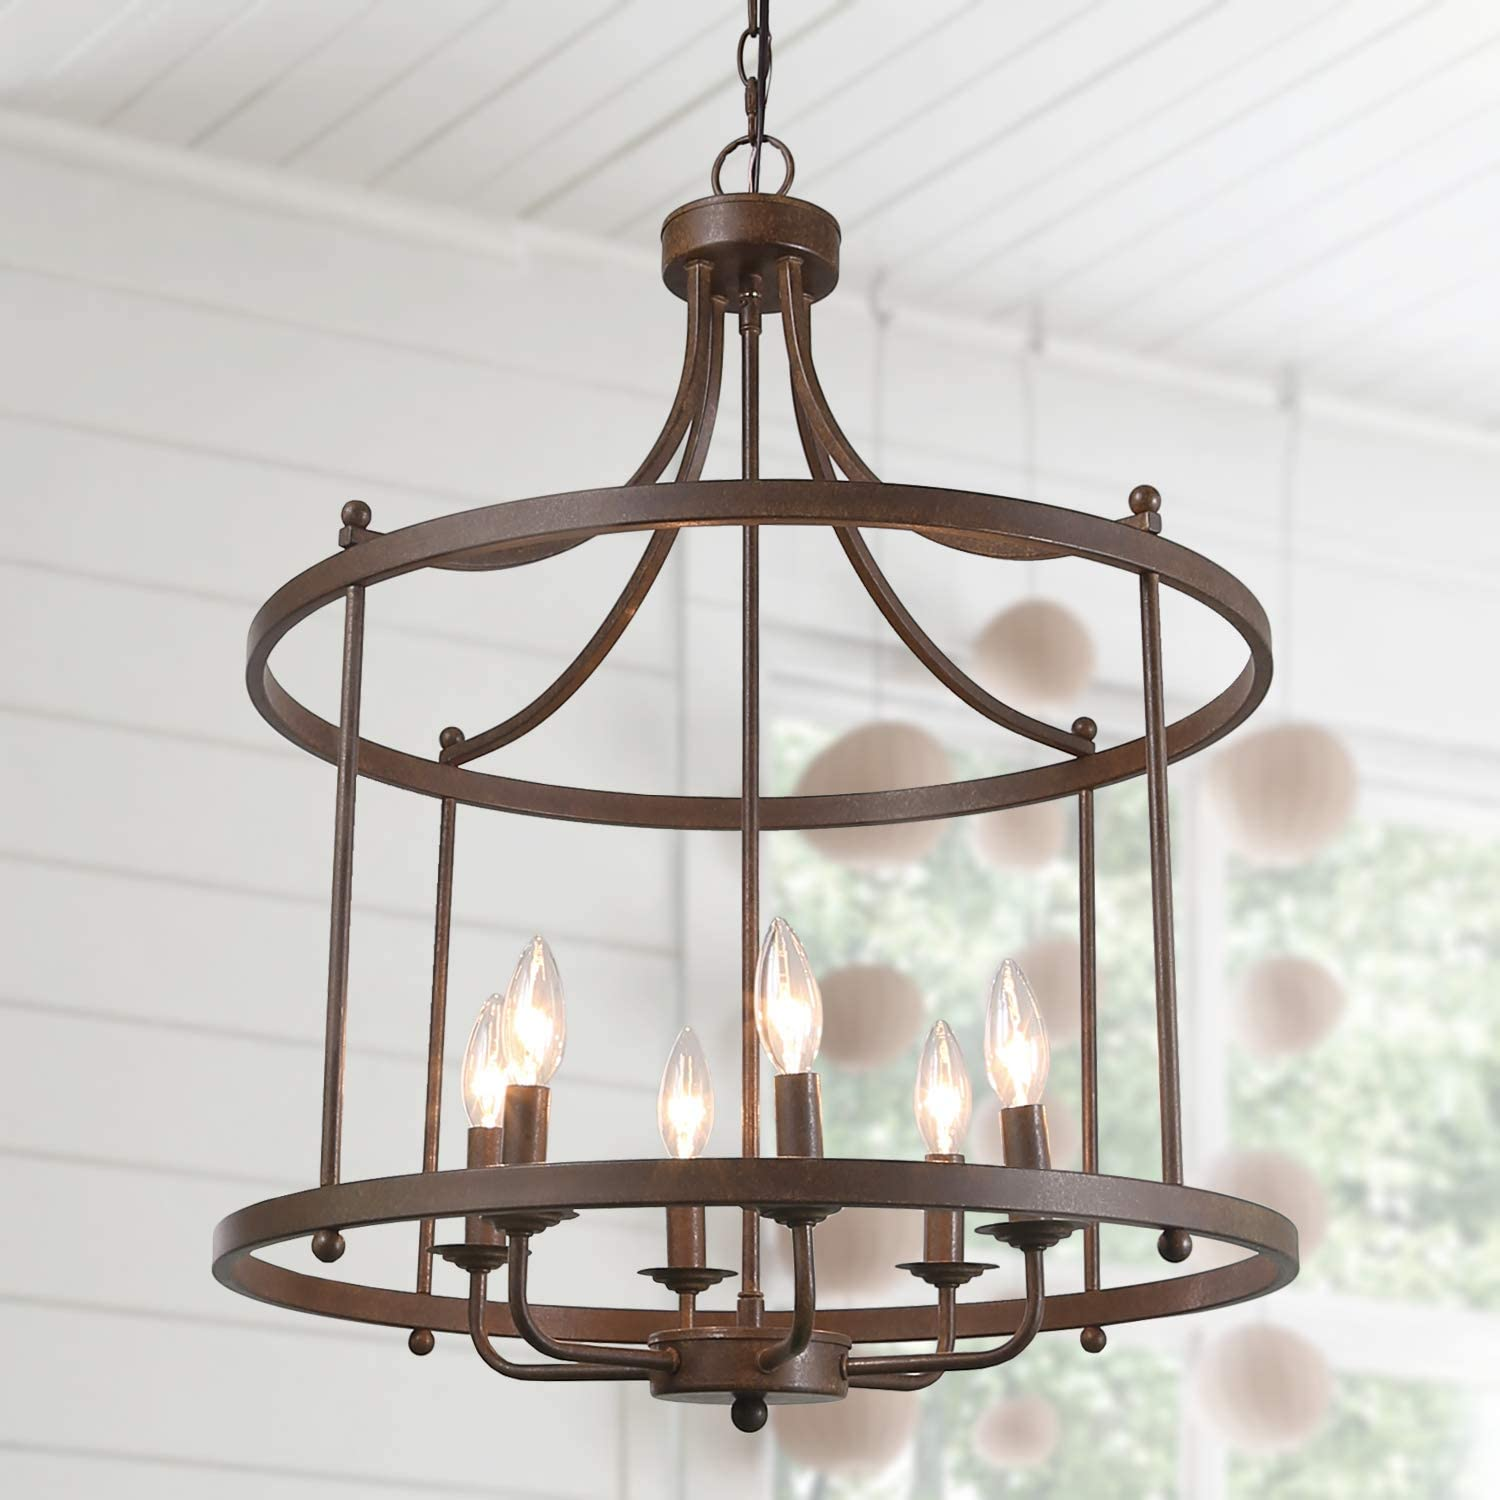 LOG BARN Drum Lightening Chandelier Antique Bronze Finish, Medium Laundry Room, 21.6 Foyer Light Fixture